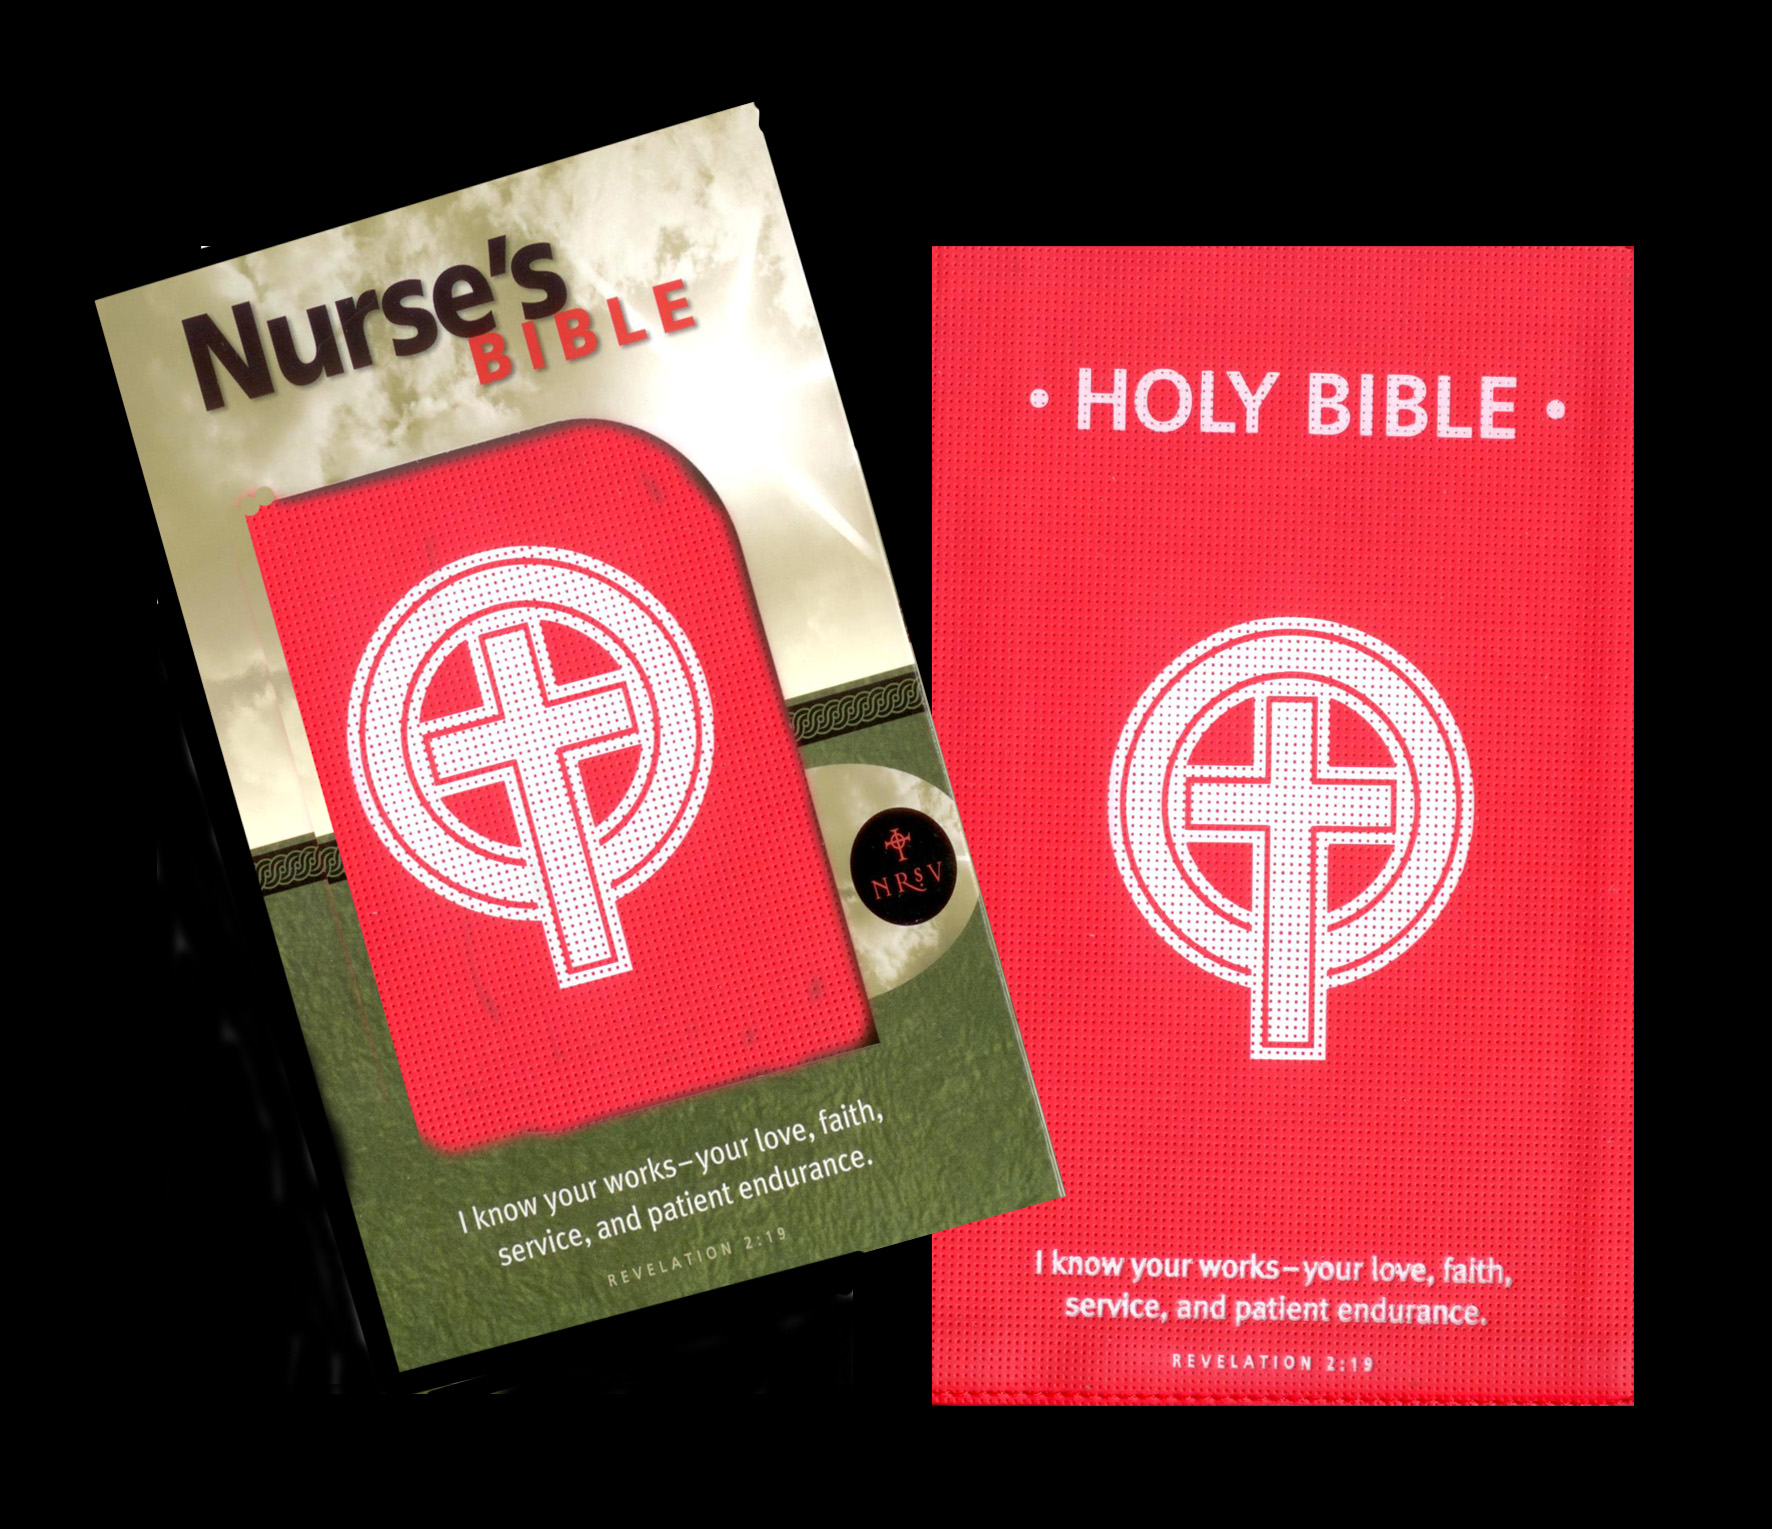 The Nurse's Bible from Abingdon Press